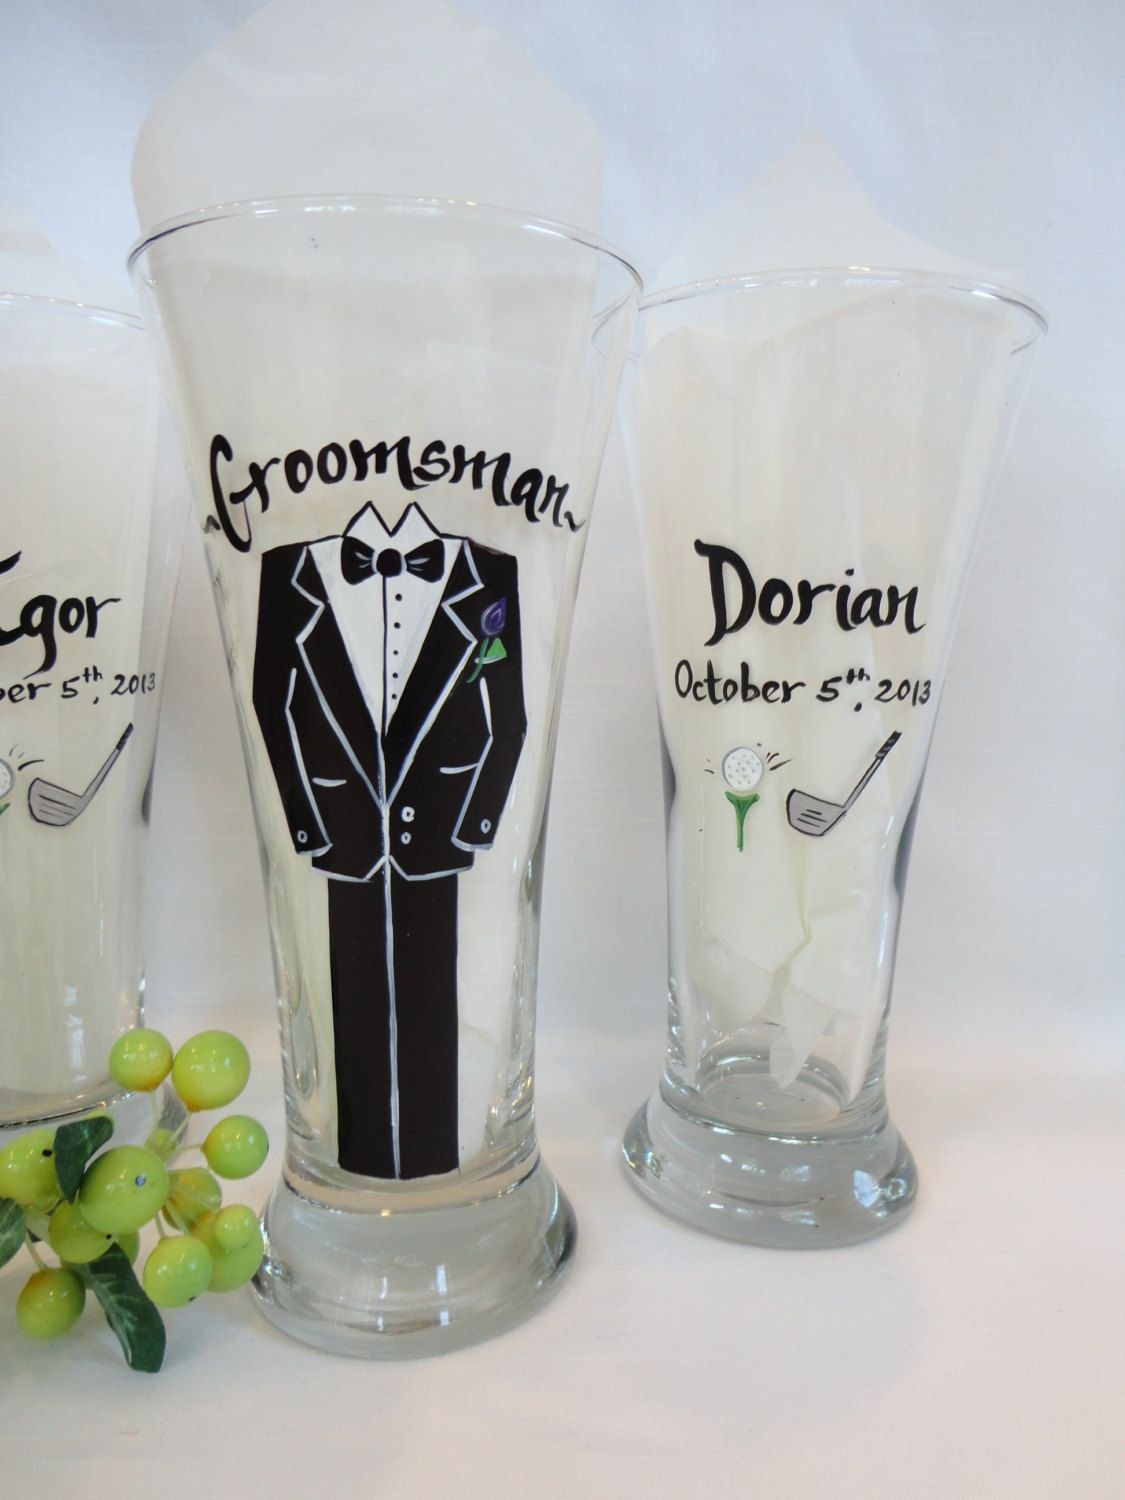 PERSONALIZED BRIDESMAID GLASSES – Hand Painted to replicate YOUR EXACT details of your wedding gown, bridesmaid dresses, tuxes flowers and other details of your wedding {www.samdesigns.net} $20 ea.